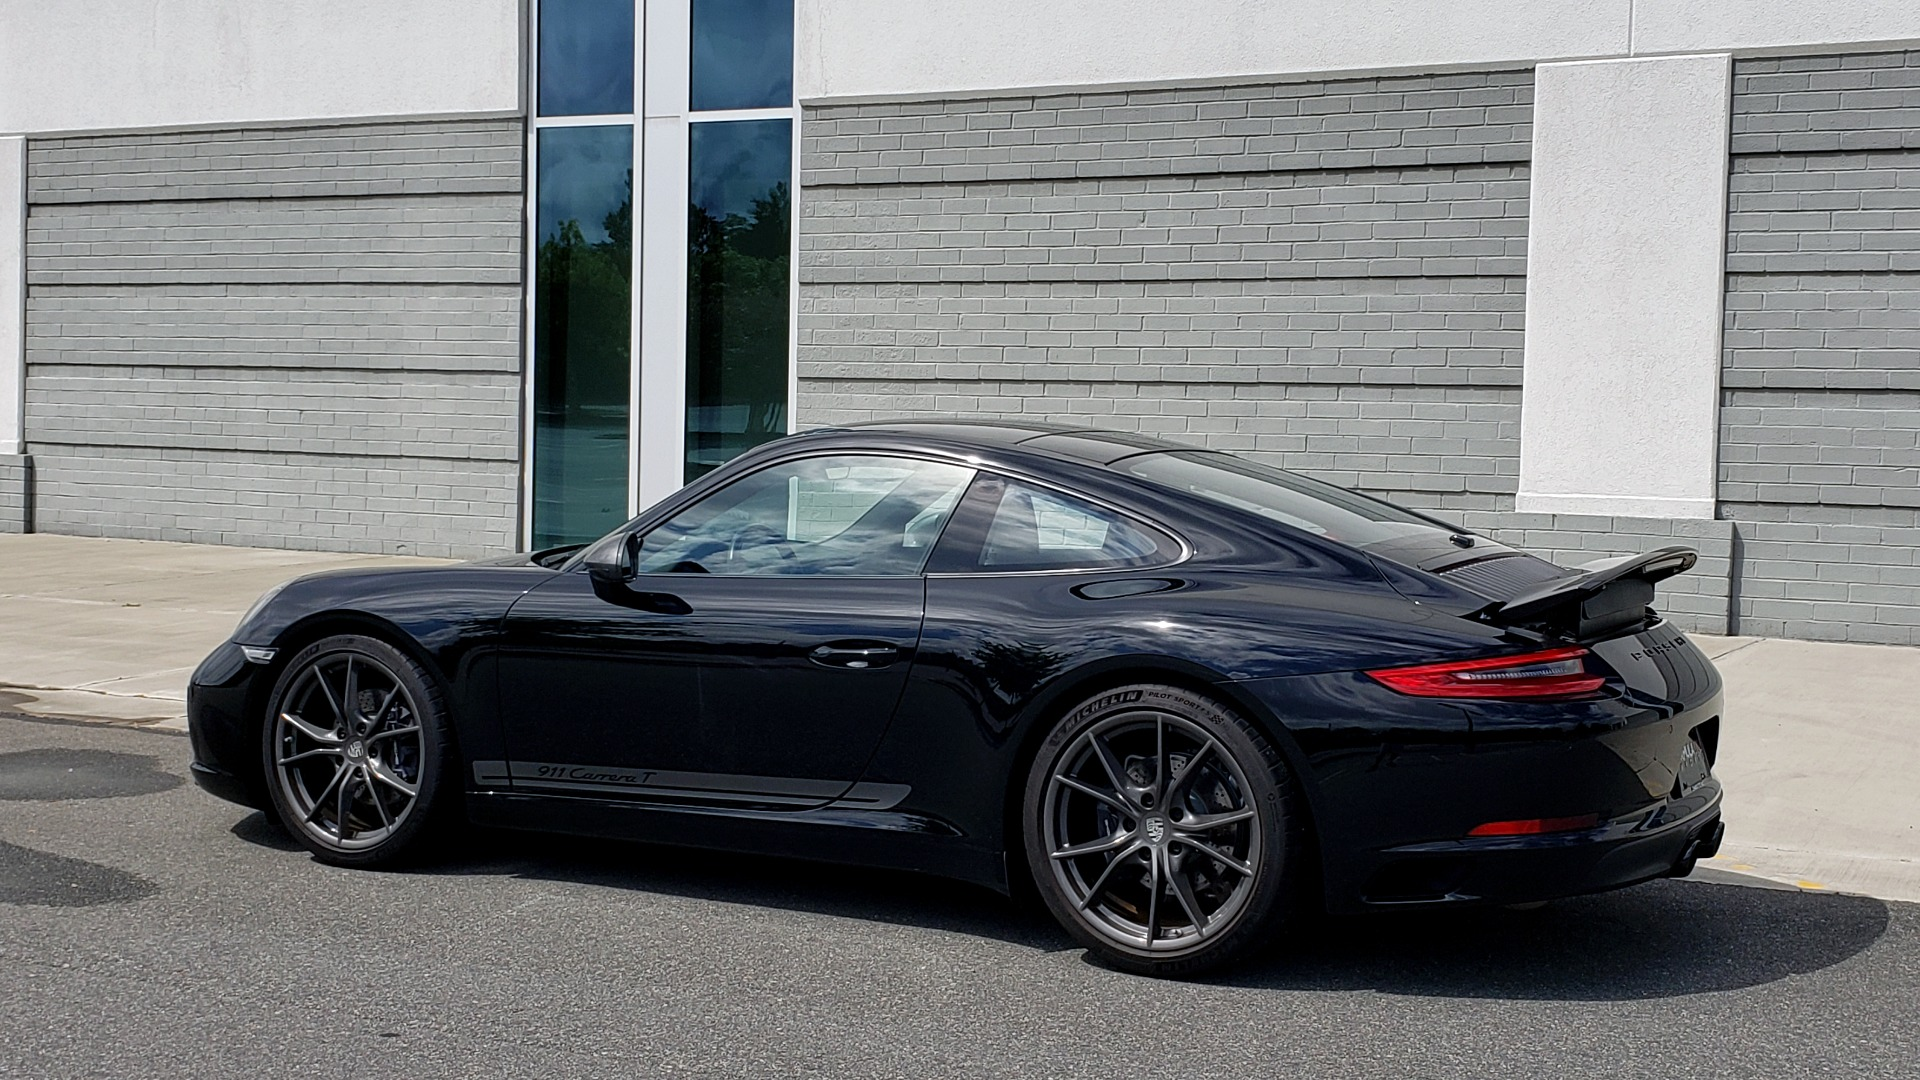 Used 2019 Porsche 911 CARRERA T / 3.0L H6 / MANUAL / PREMIUM / NAV / BOSE / SUNROOF / REARVIEW for sale $117,000 at Formula Imports in Charlotte NC 28227 7